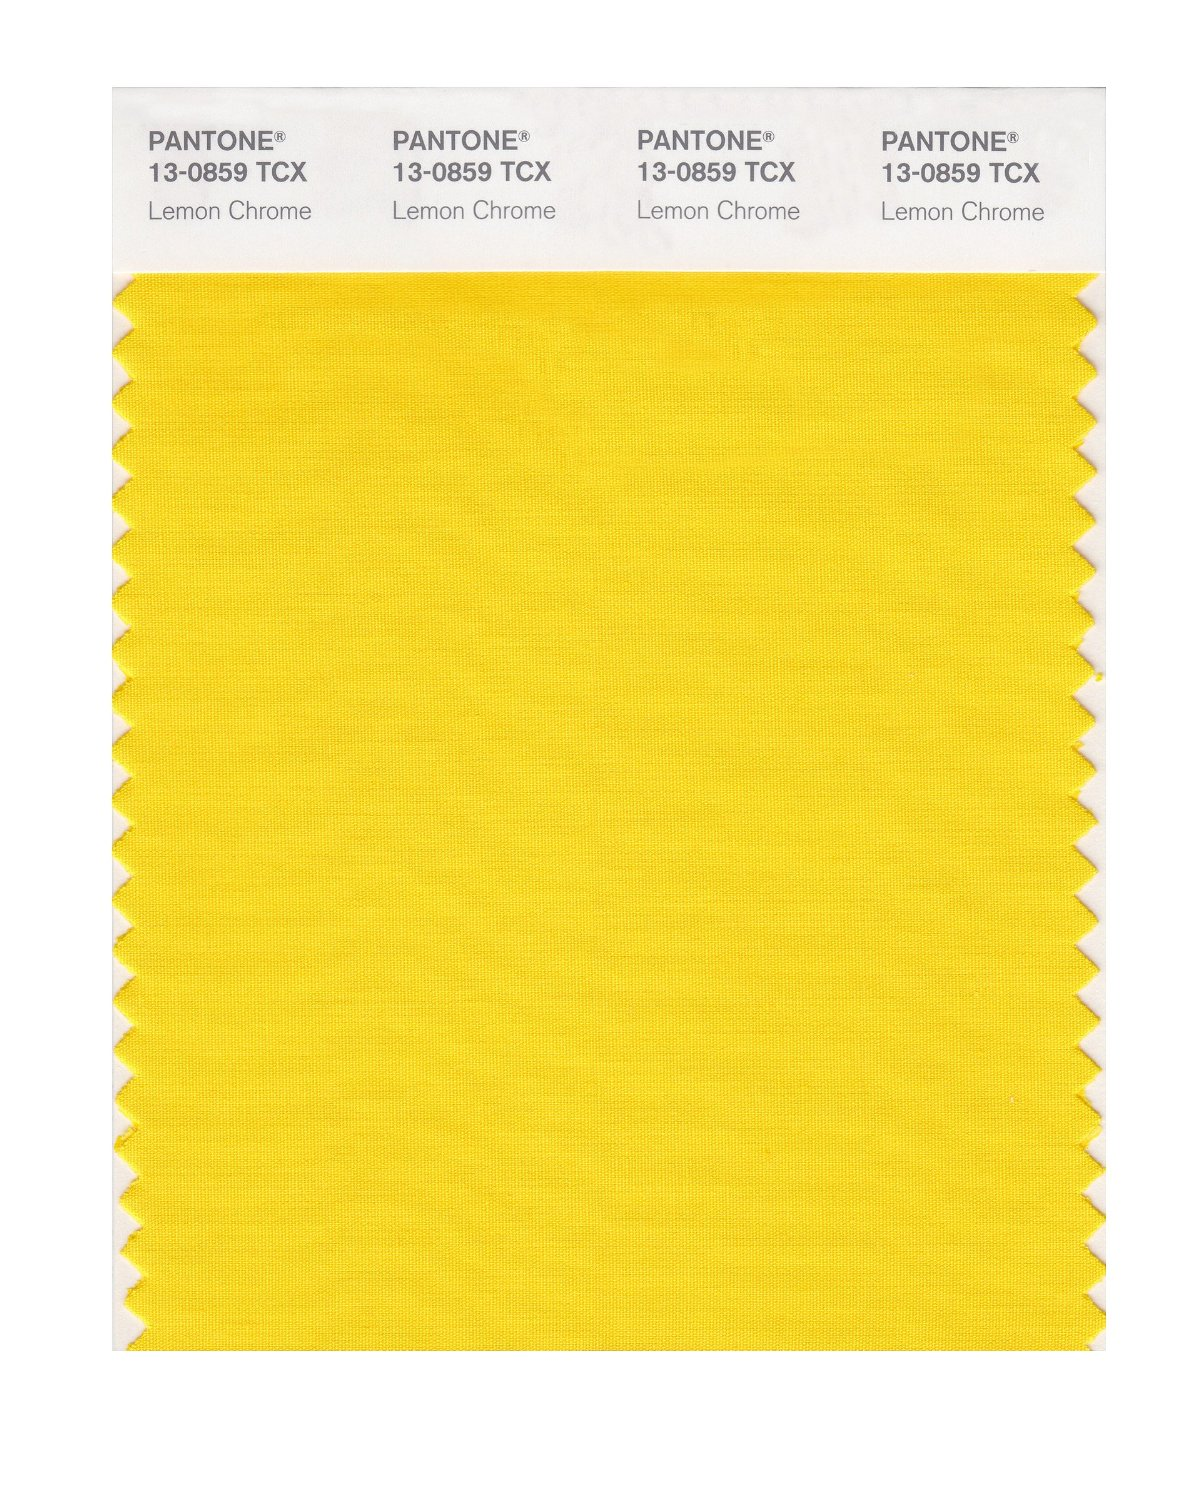 Pantone Smart Swatch 13-0859 Lemon Chrome